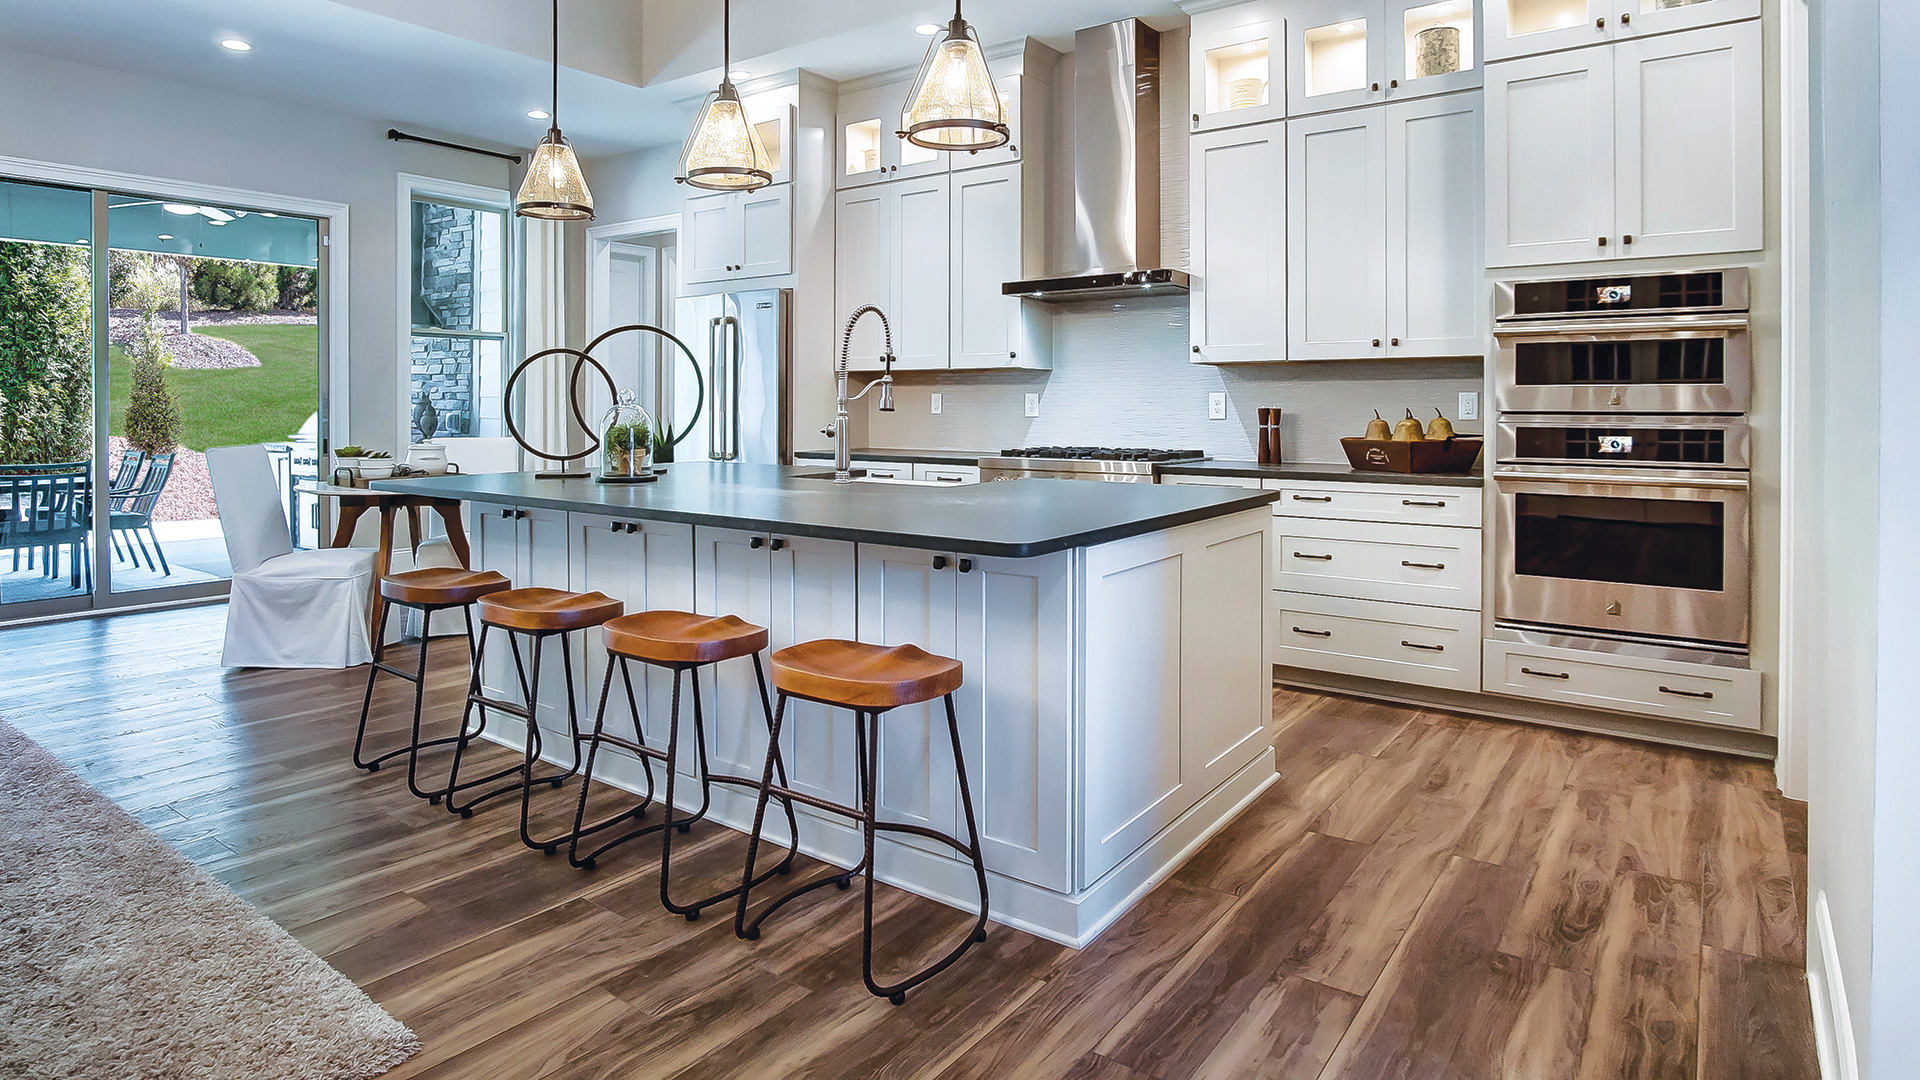 Entertain family and friends in your dream kitchen